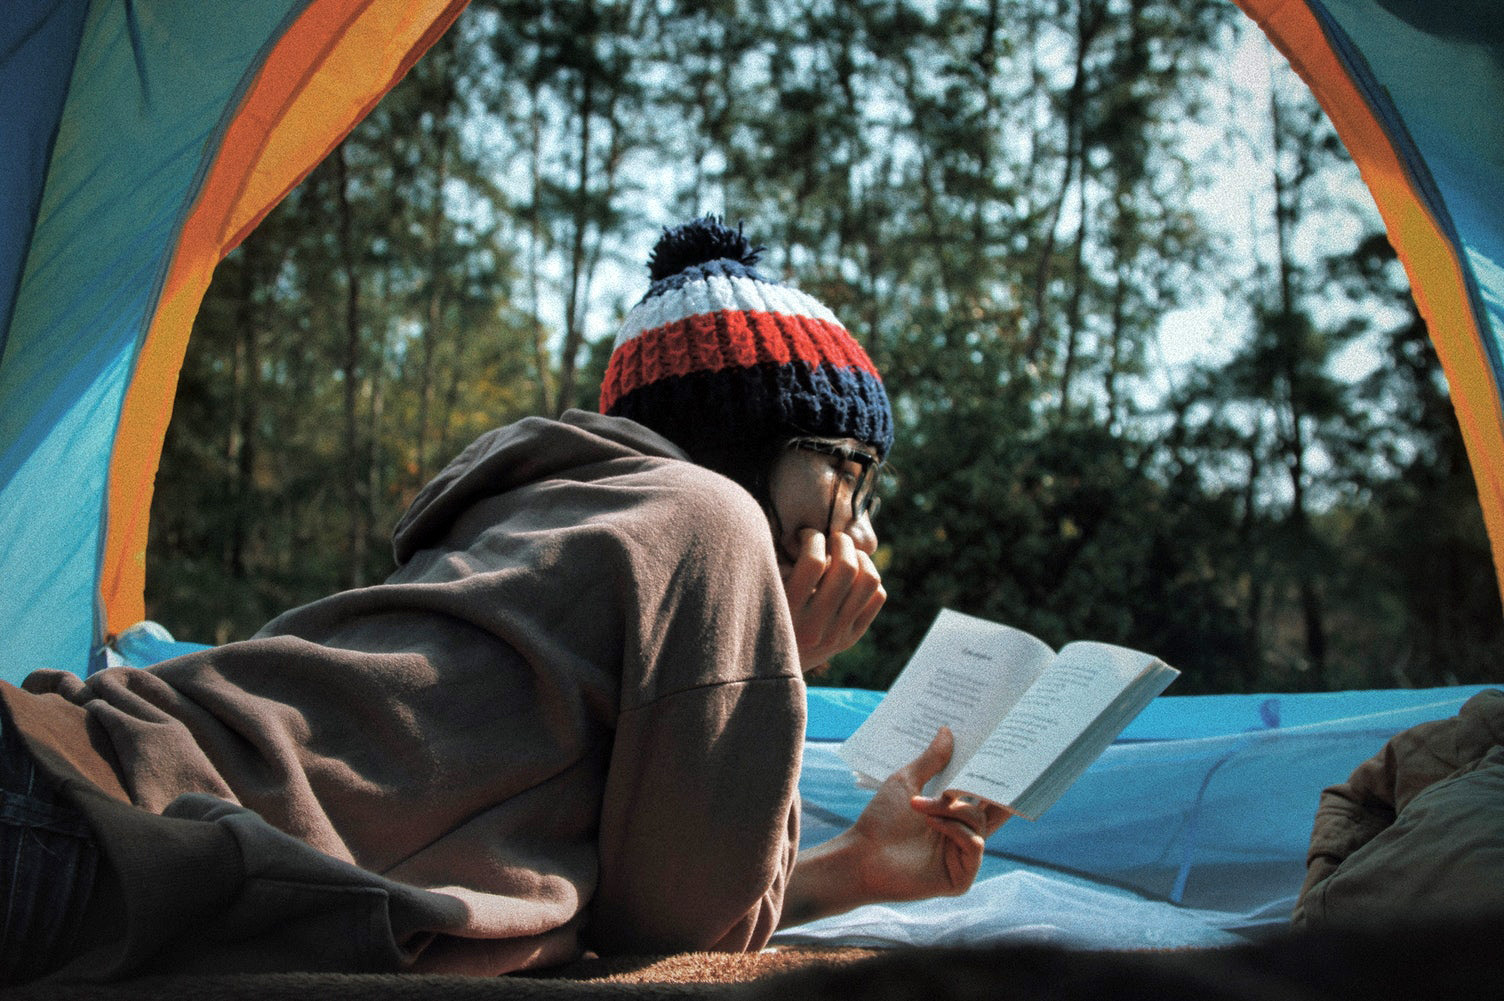 Young woman reading a book in a tent